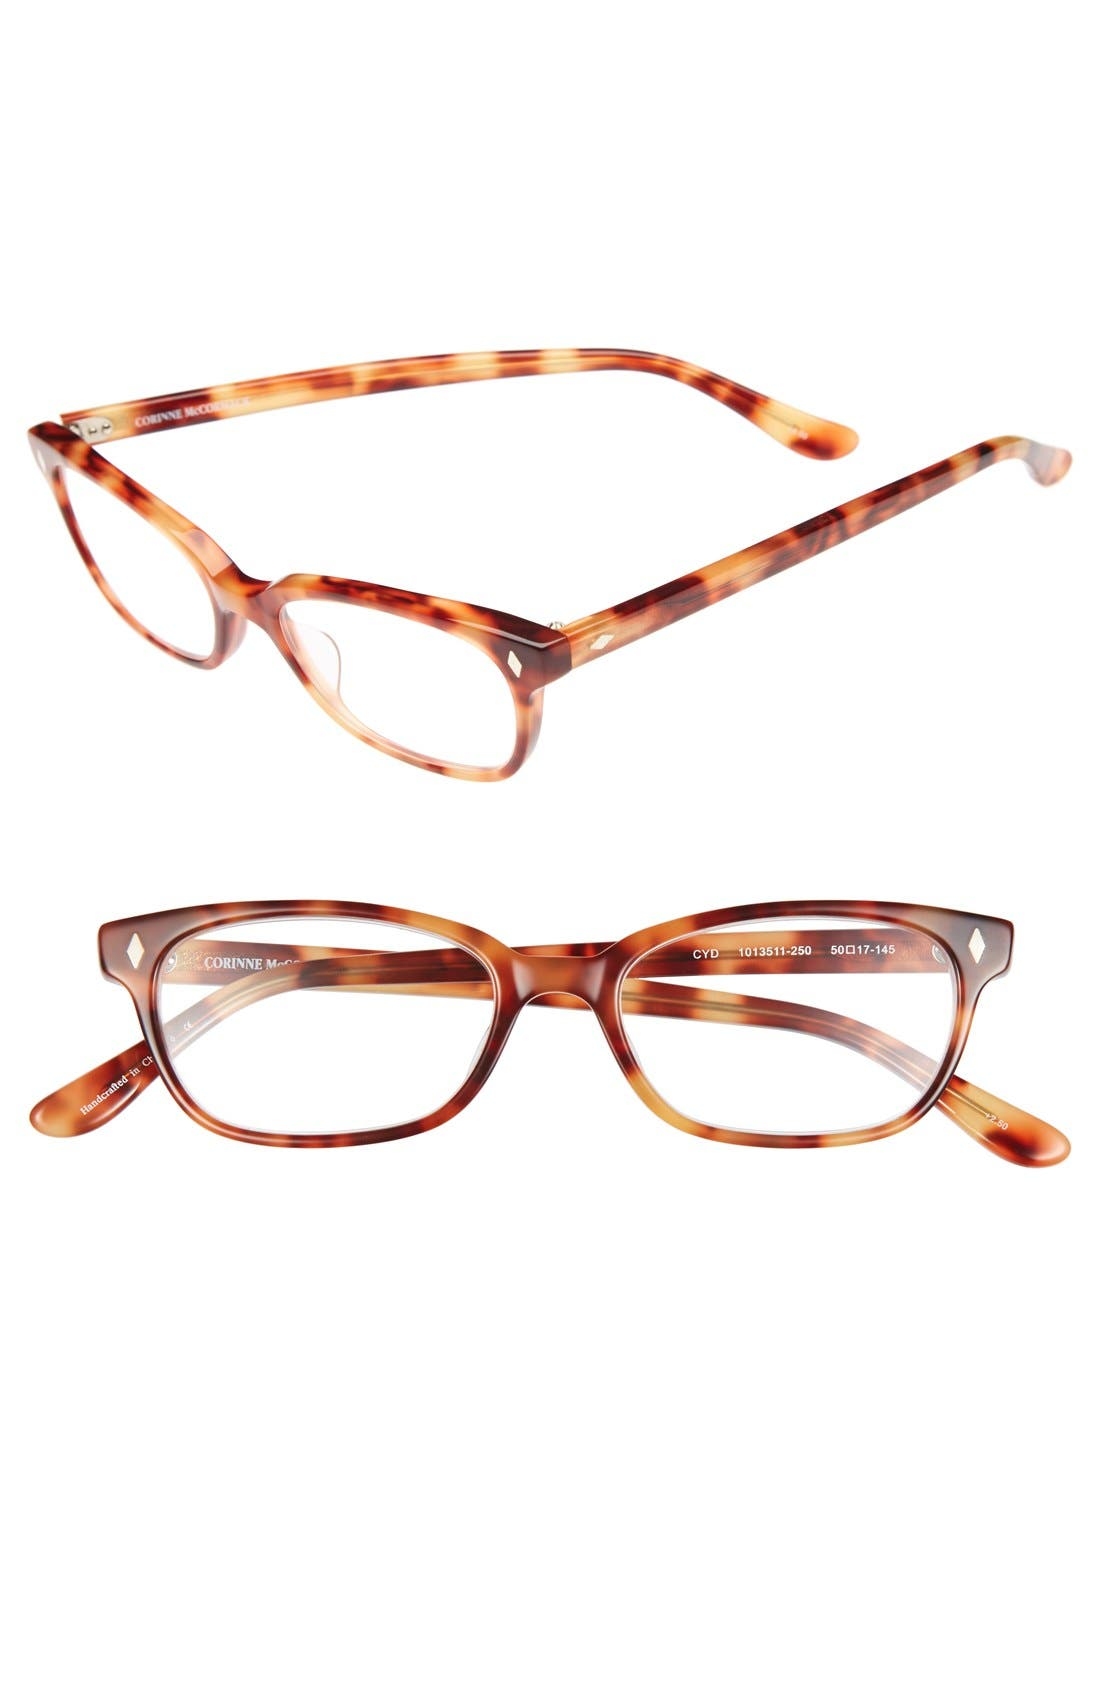 Main Image - Corinne McCormack 'Cyd' 52mm Reading Glasses (2 for $88)